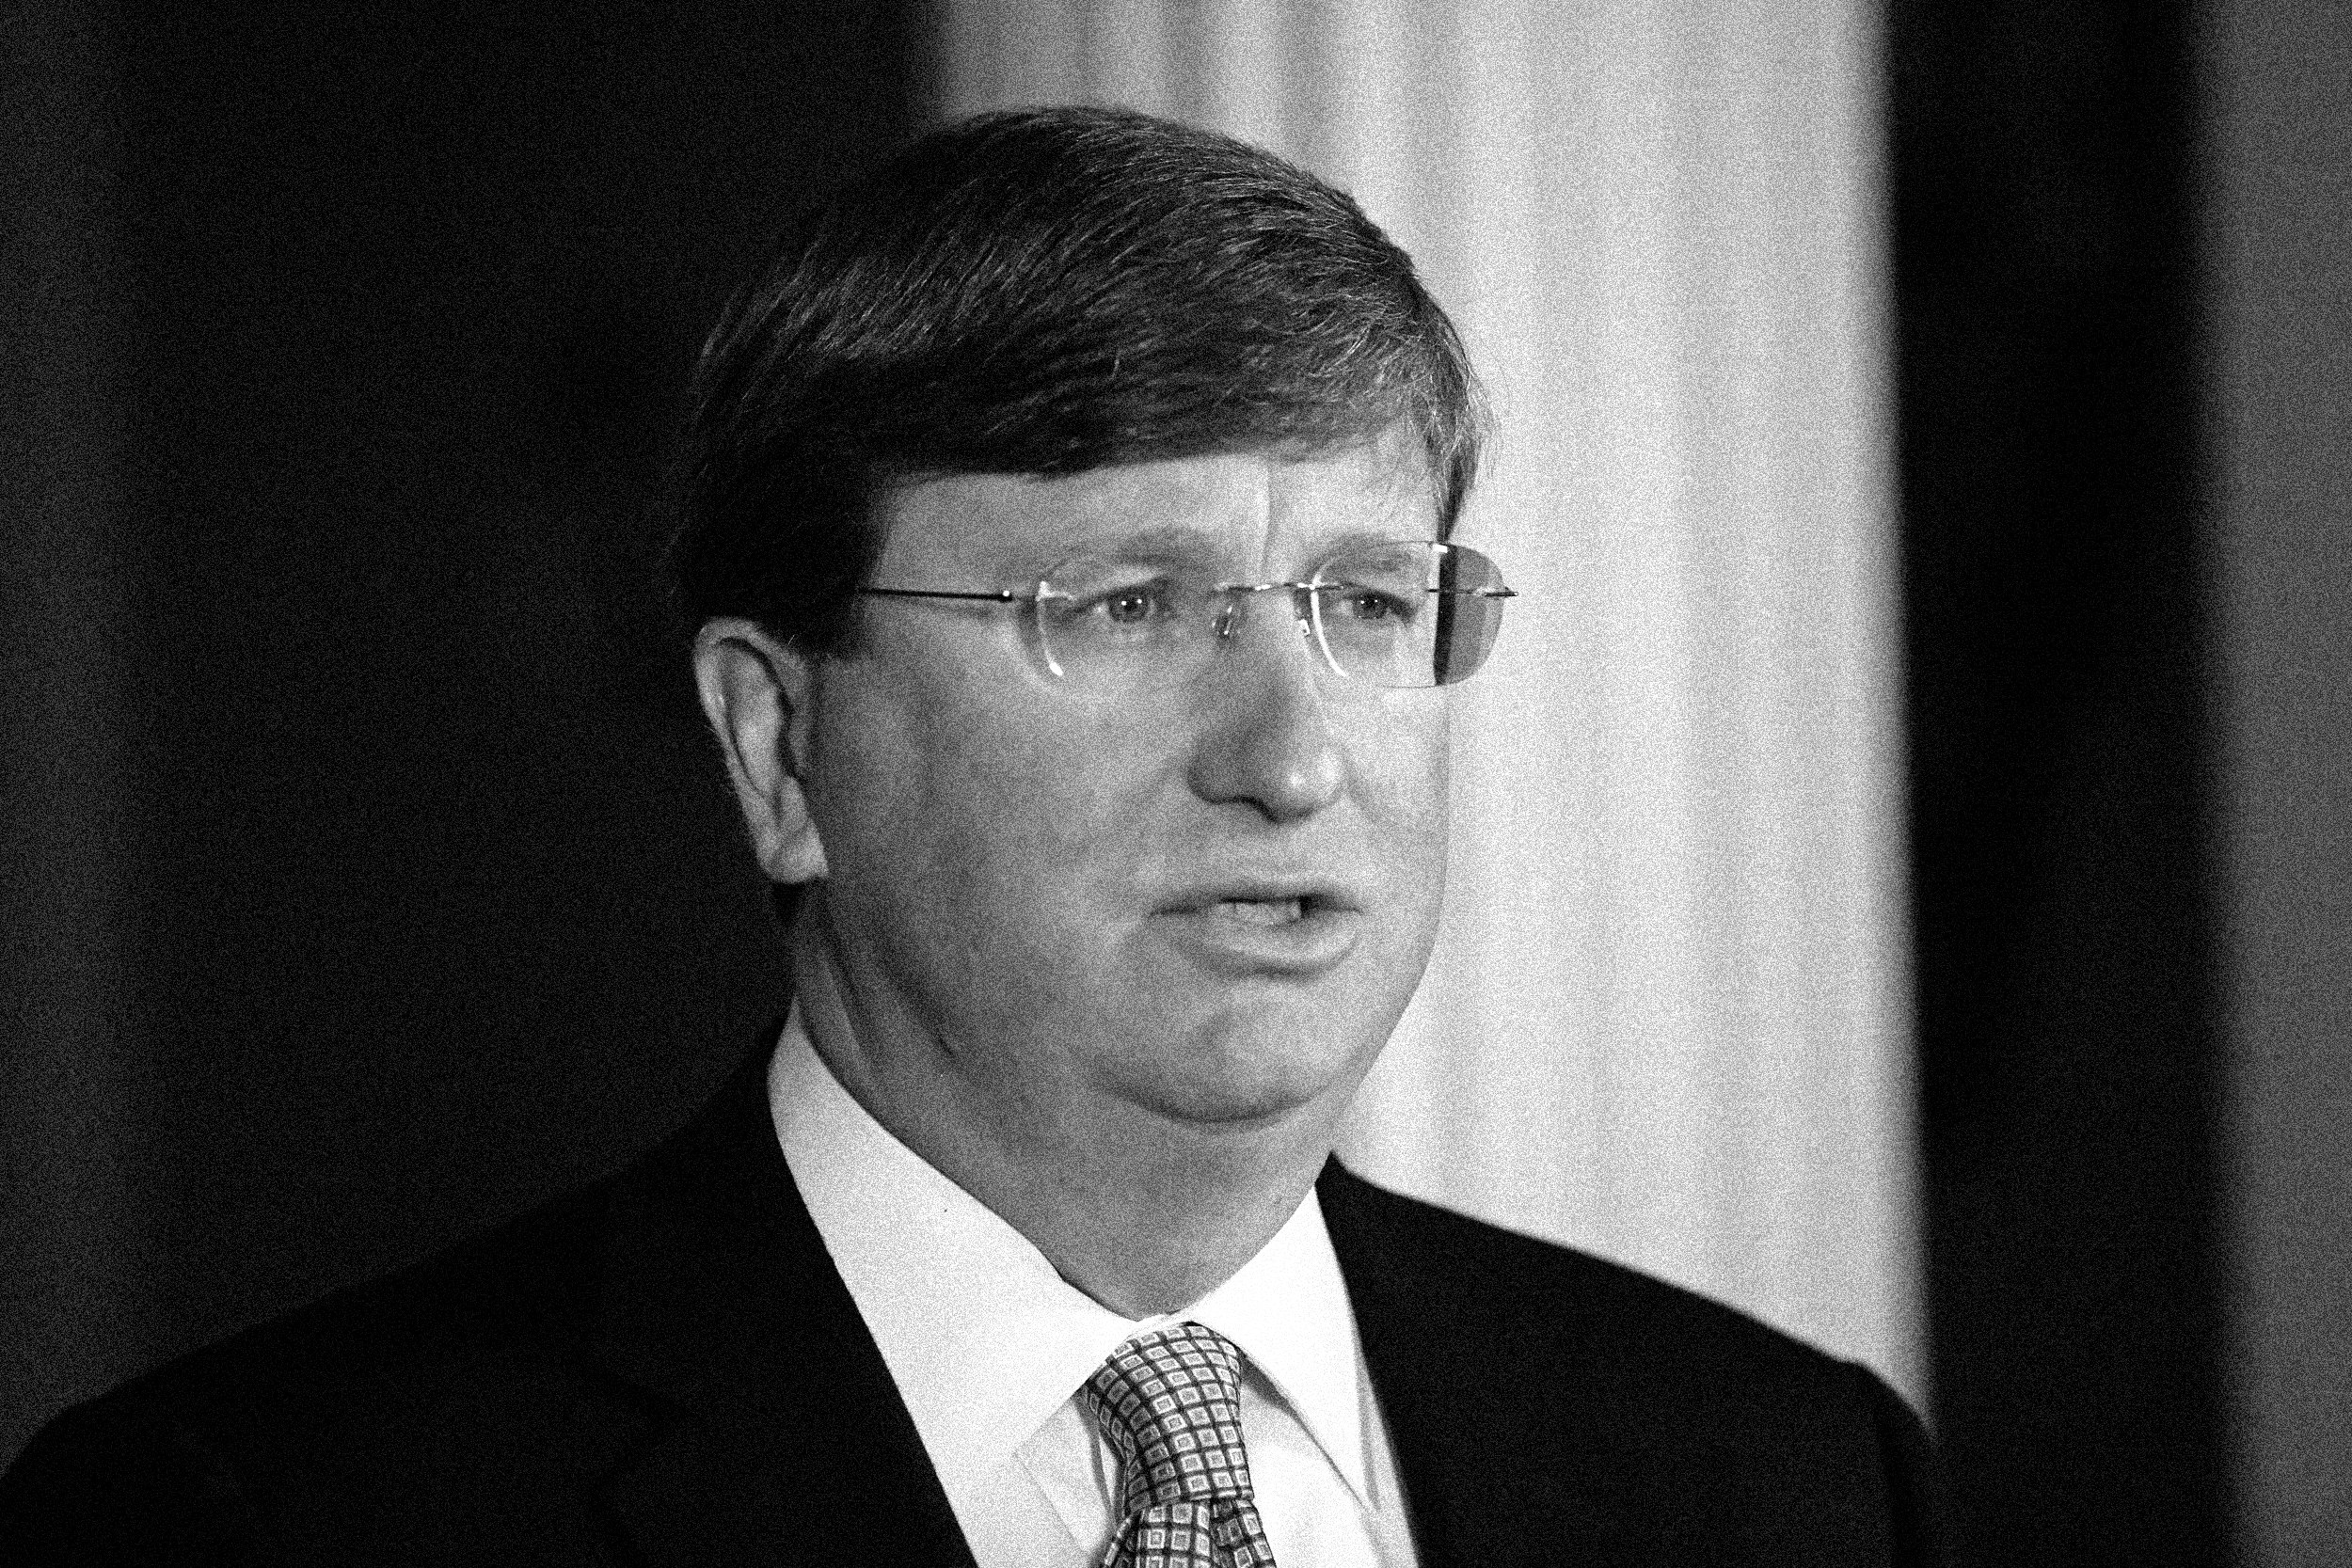 Covid's killing Mississippi, but Gov. Tate Reeves has only got a prayer